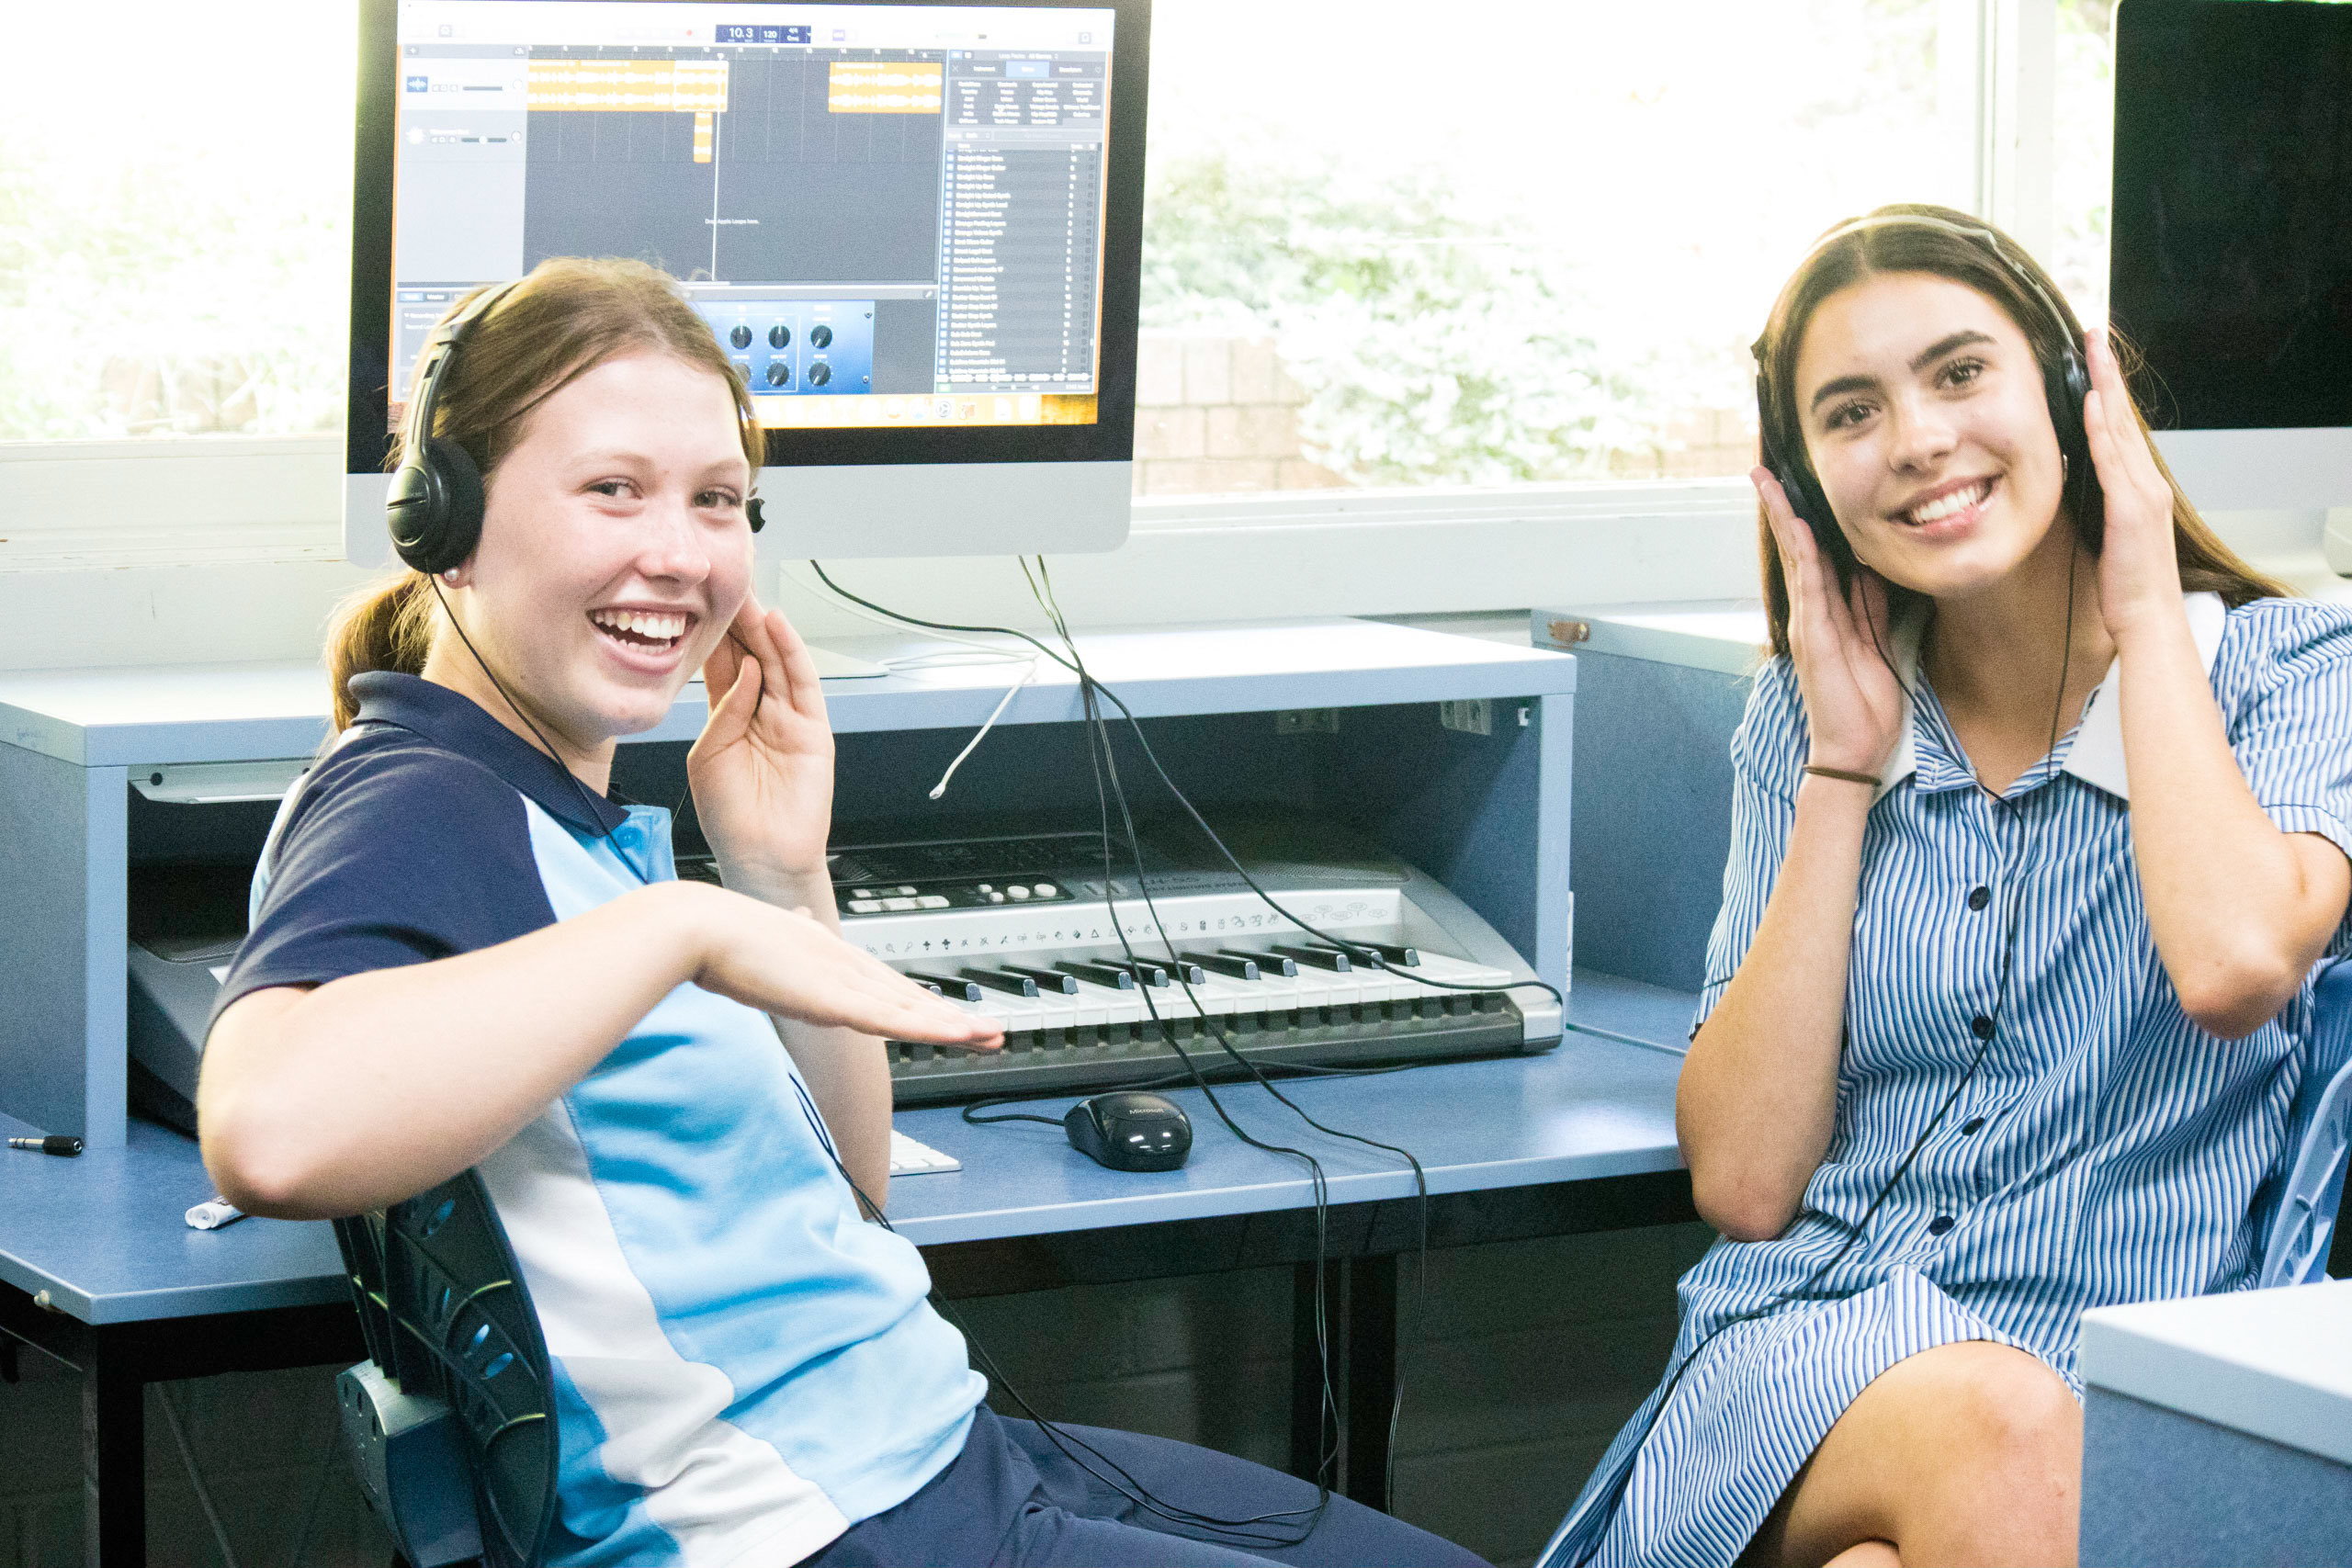 Music Labs enhance learning at Covenant